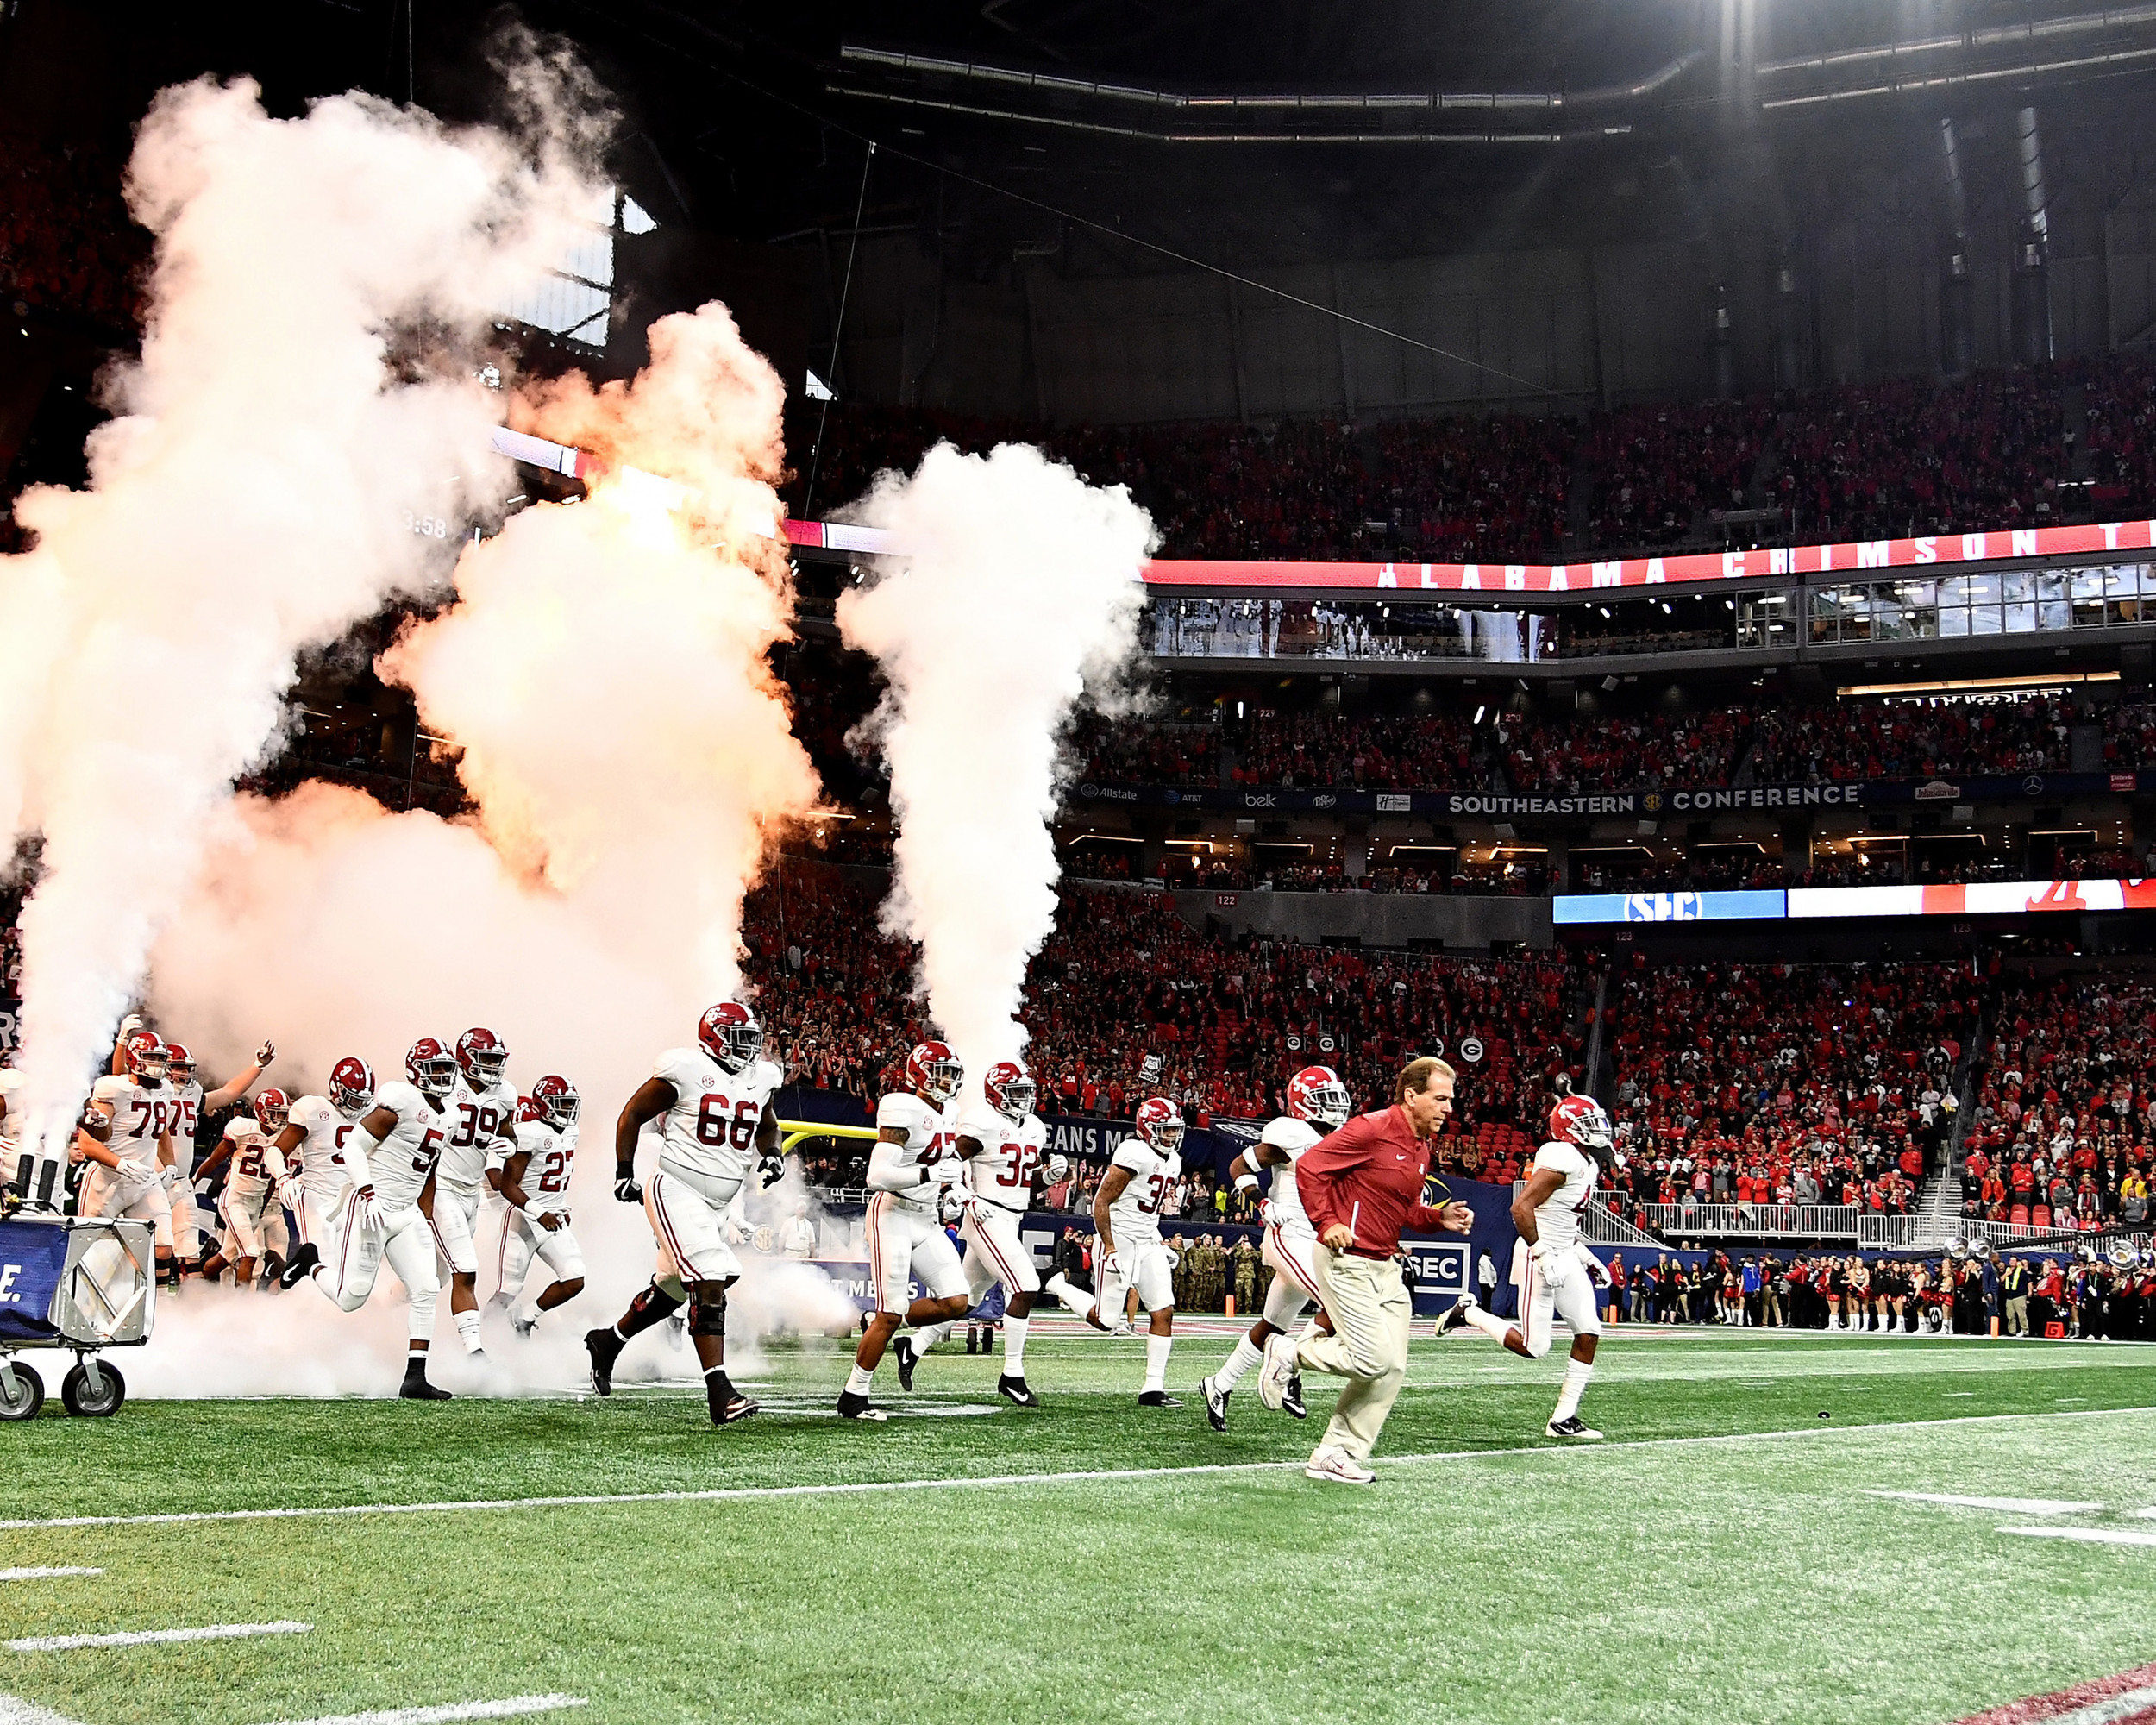 Alabama Crimson Tide head coach Nick Saban takes the field with his time prior to the 2018 SEC Championship football game, featuring the Georgia Bulldogs and the Alabama Crimson Tide, at Mercedes-Benz Stadium in Atlanta, Ga., on Dec. 1, 2018. Alabama wins 35-28. (Photo by Lee Walls)